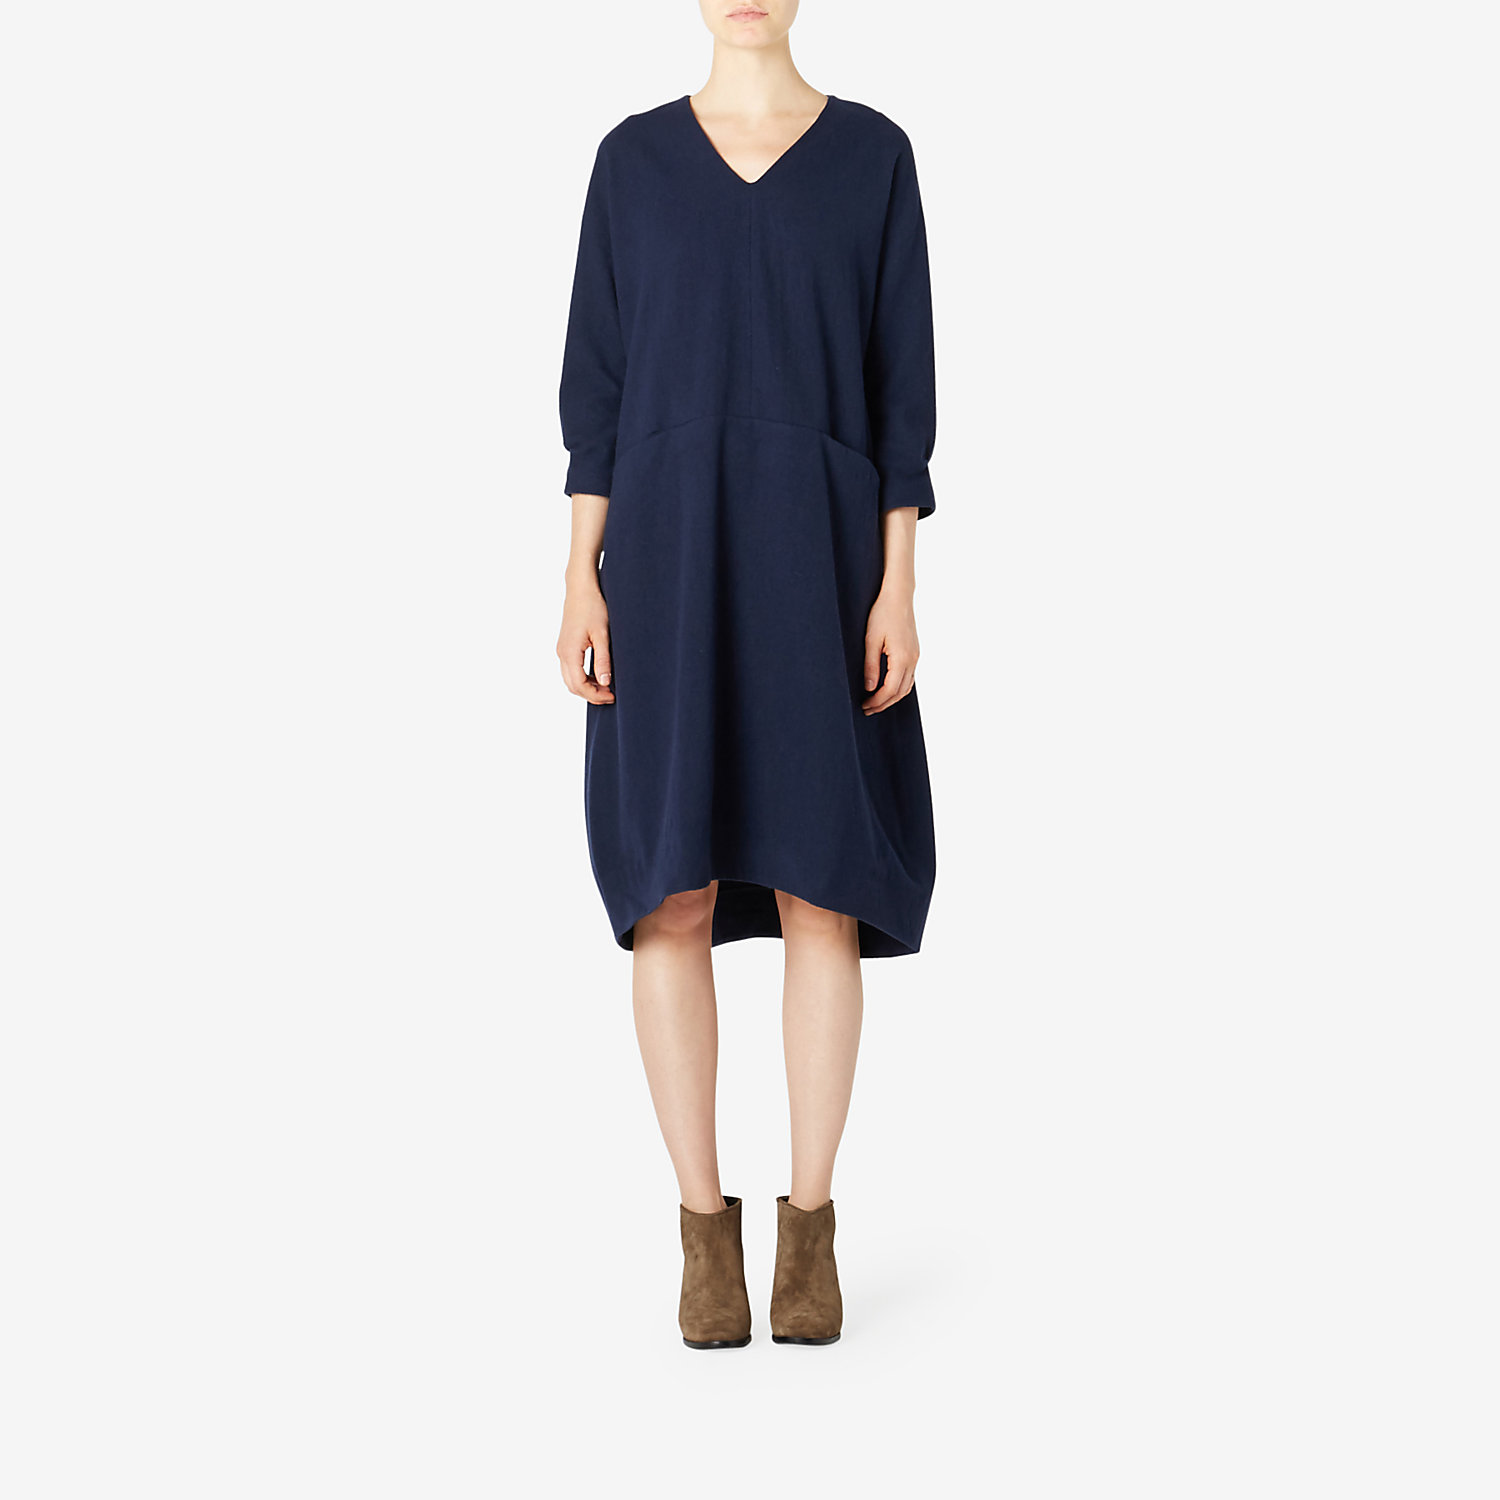 TAILOR BOILED WOOL TUNIC DRESS